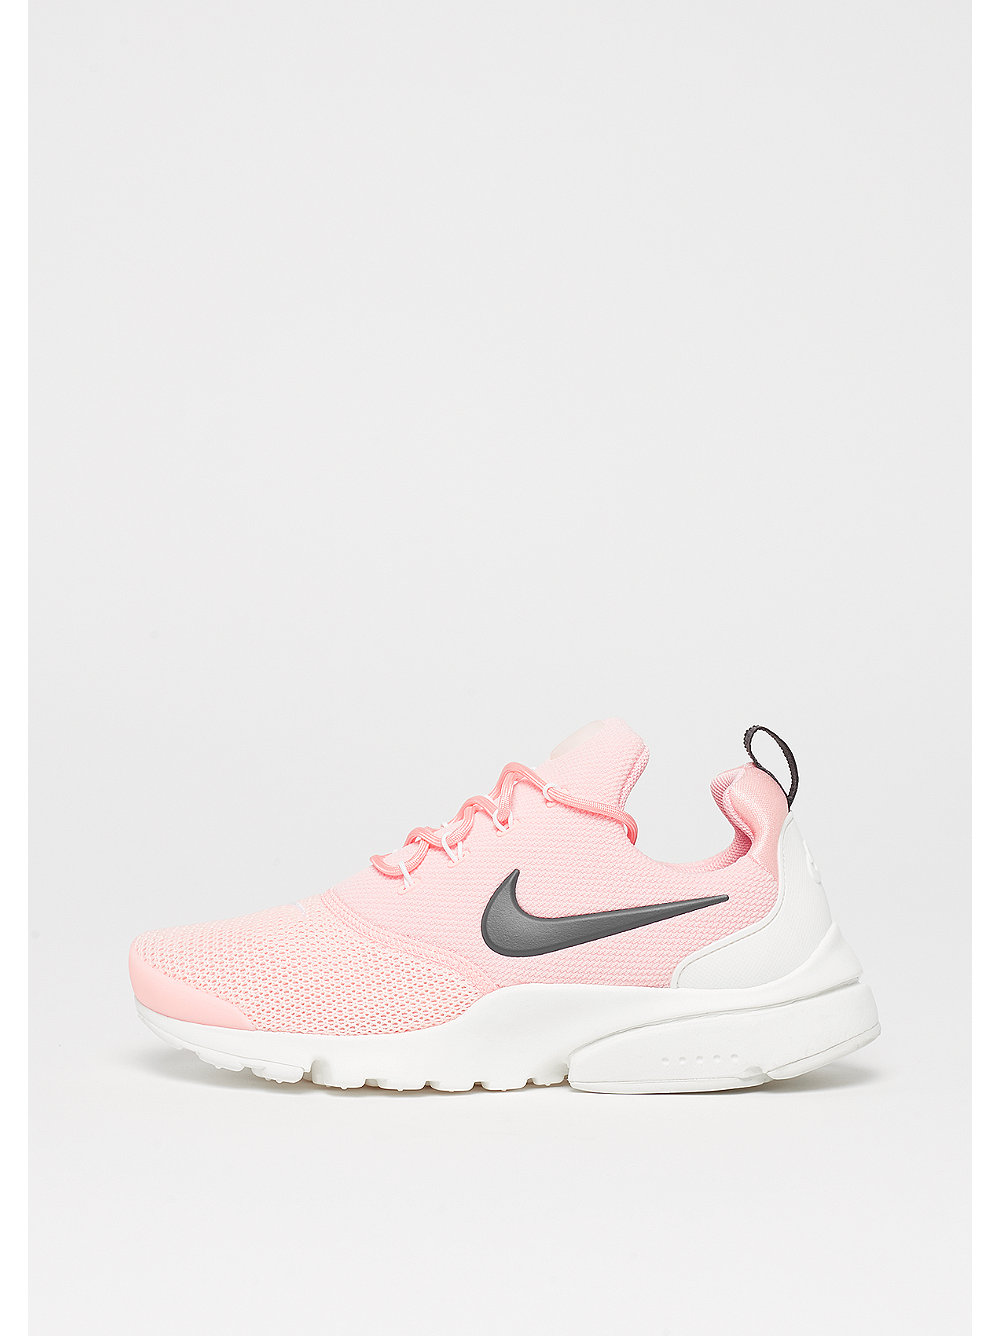 NIKE Wmns Presto Fly storm pink/anthracite-summ...